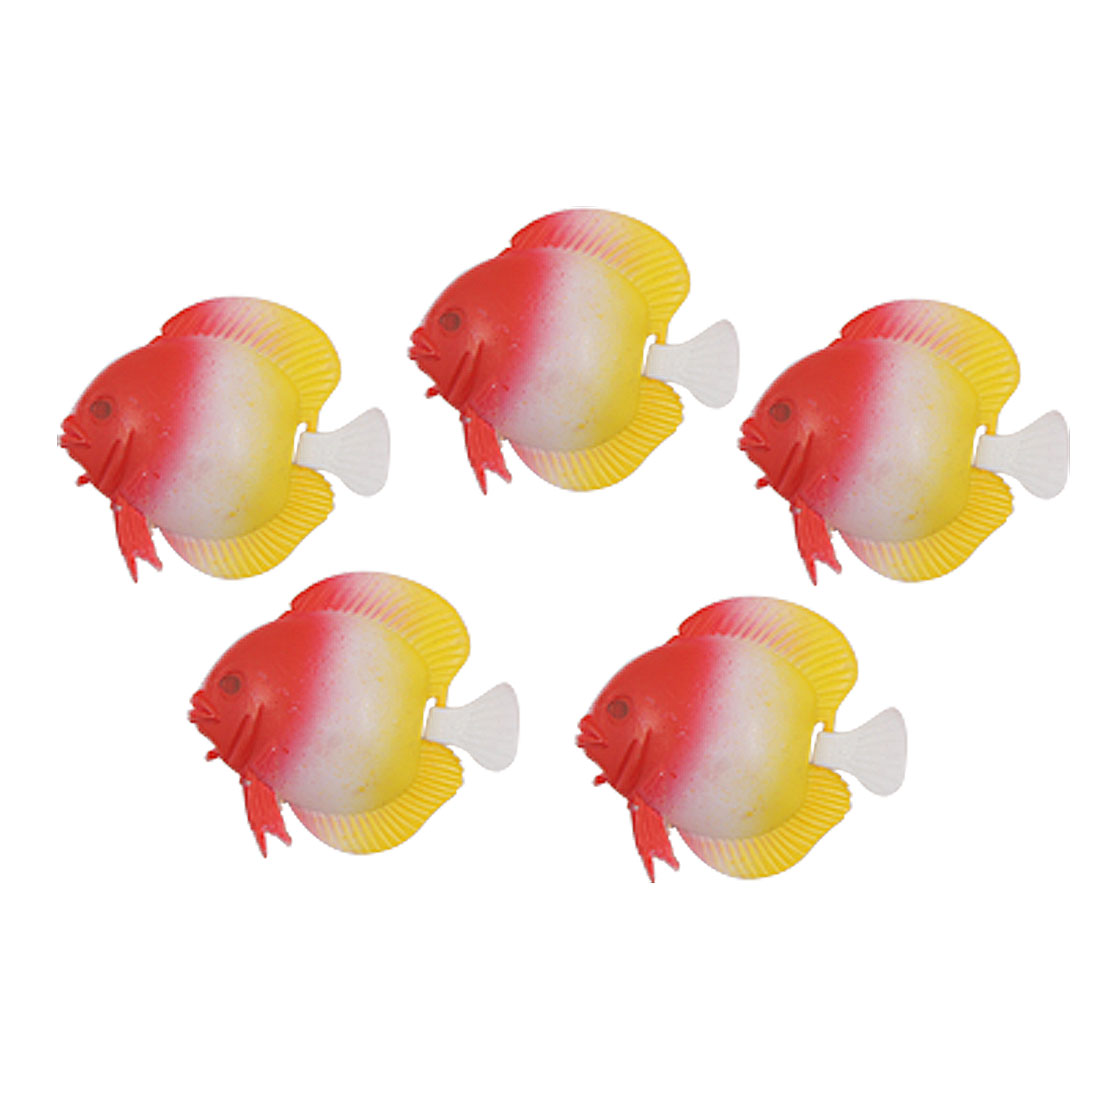 Wiggling Tail Floating Plastic Fish Aquarium Ornament 5PCS